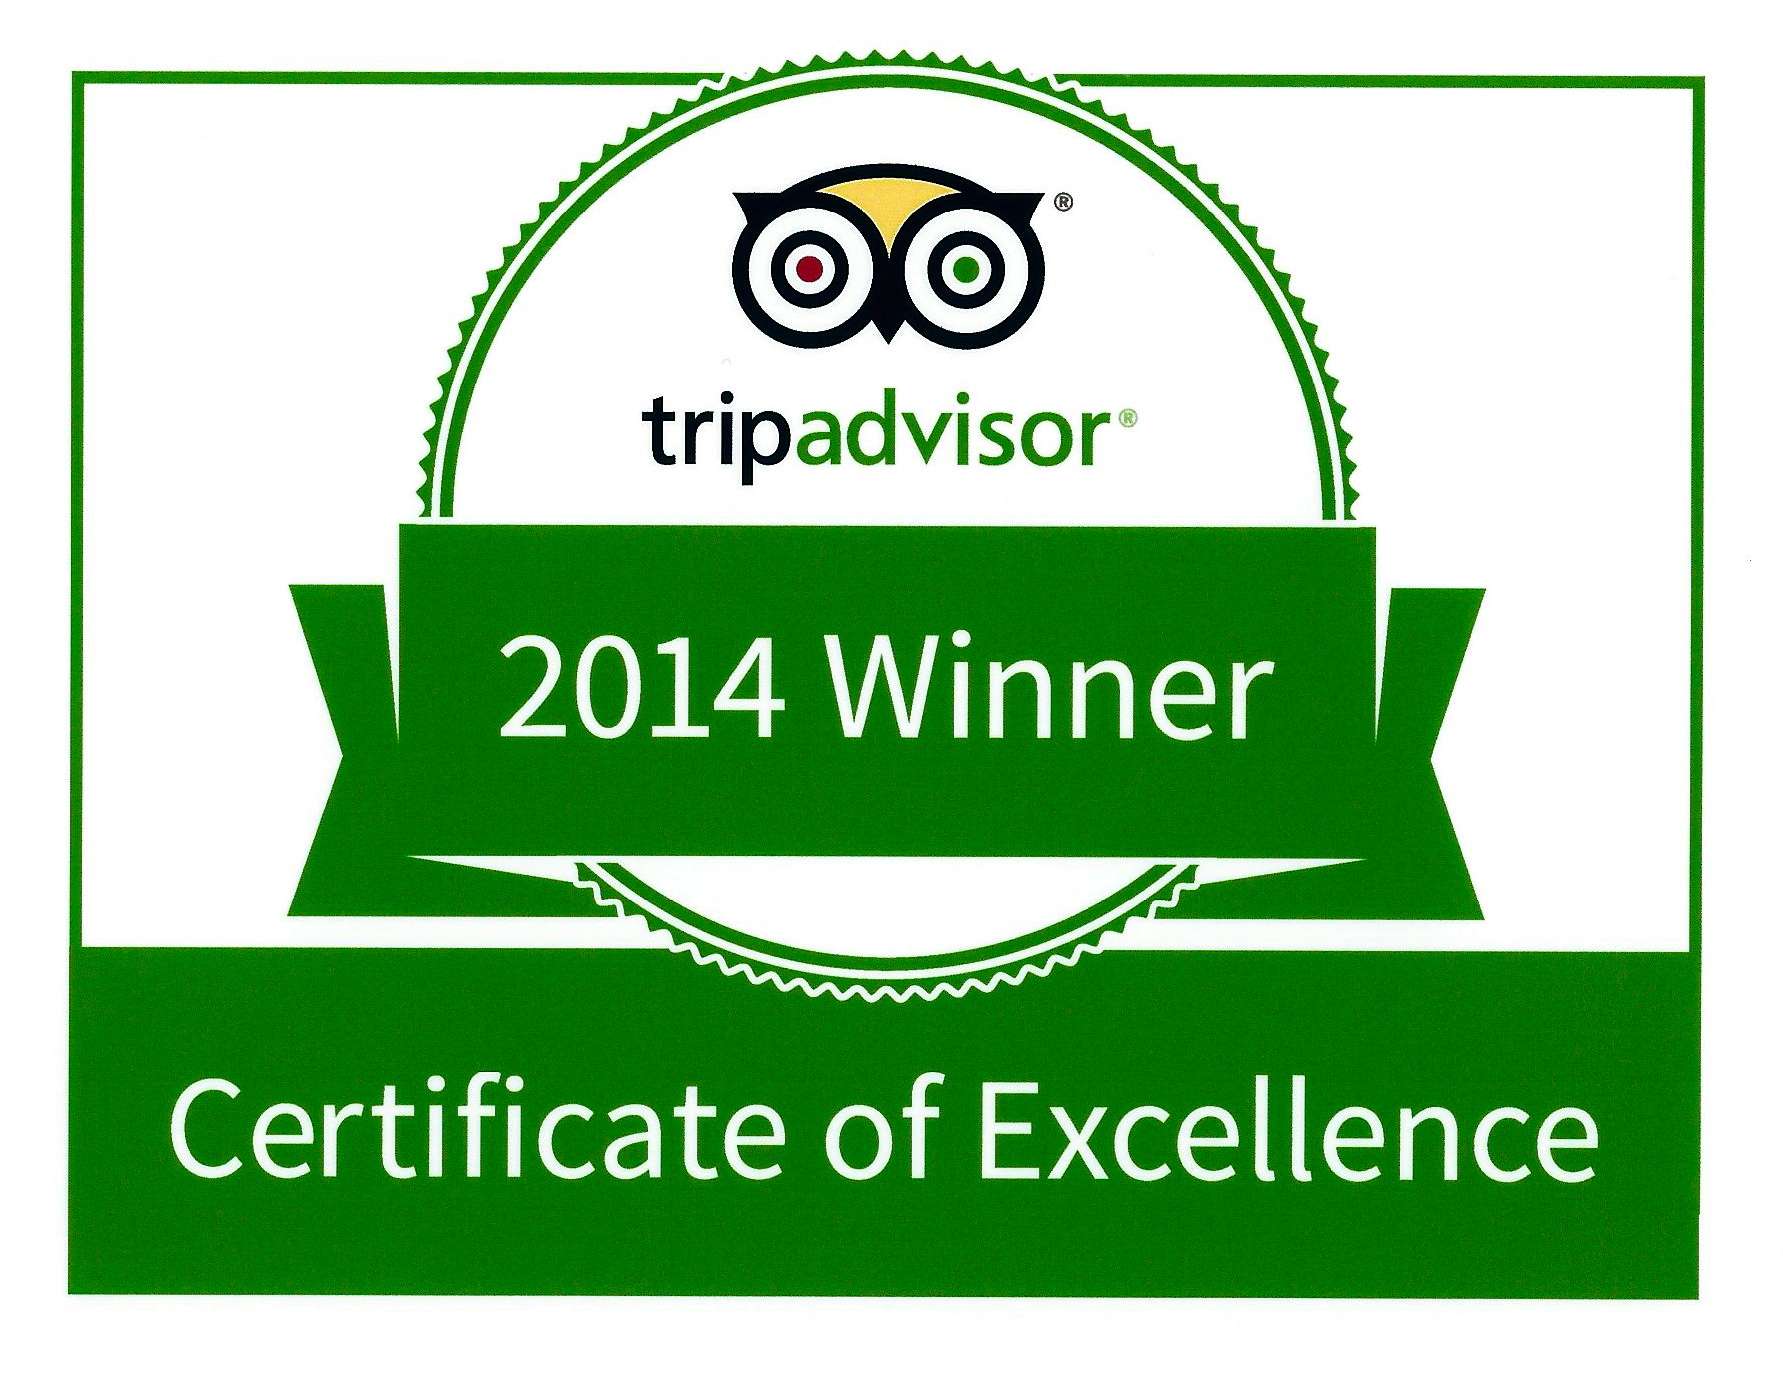 tripadvisor_certificate_of_excellence